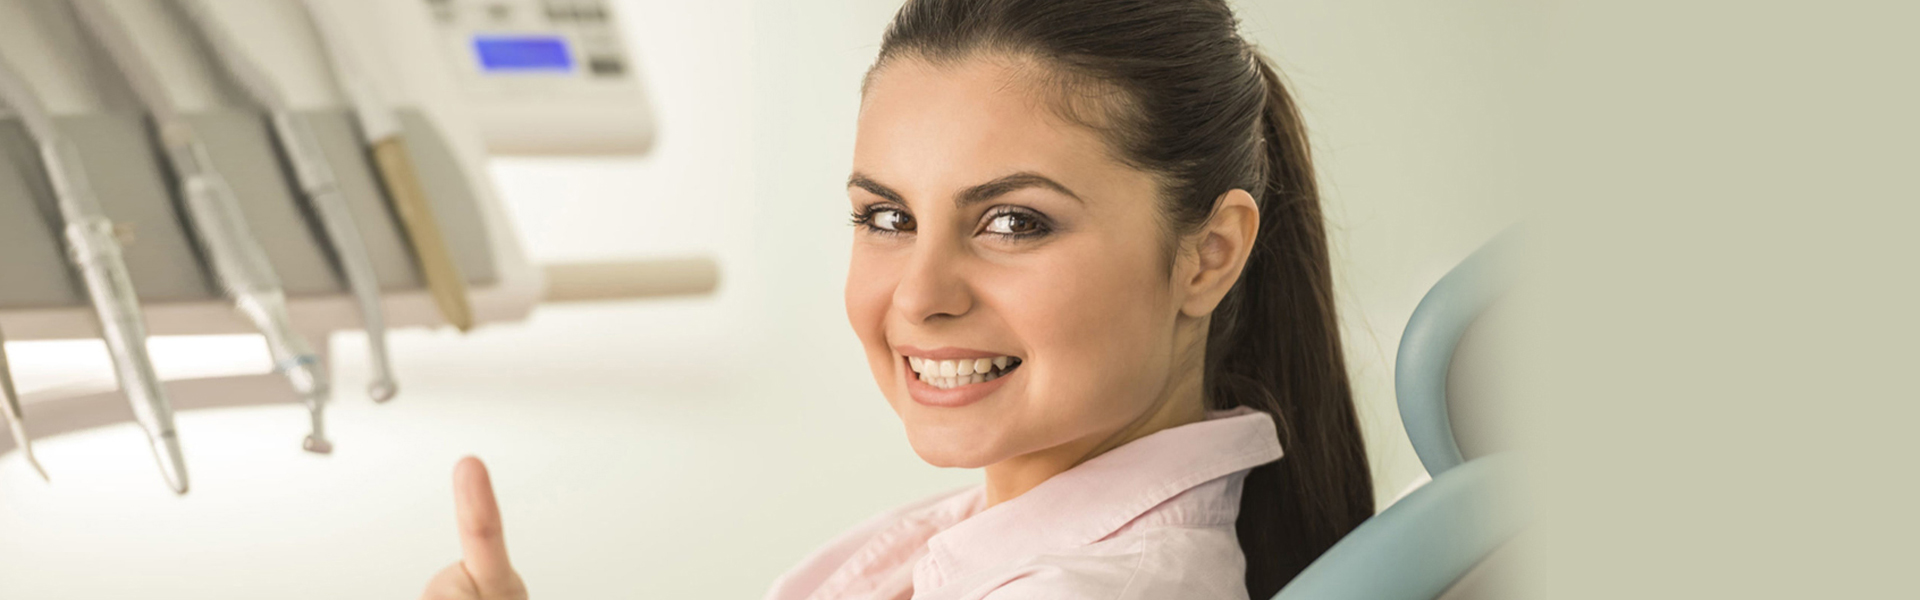 Is There Any Need for Regular Dental Exam and Cleaning?